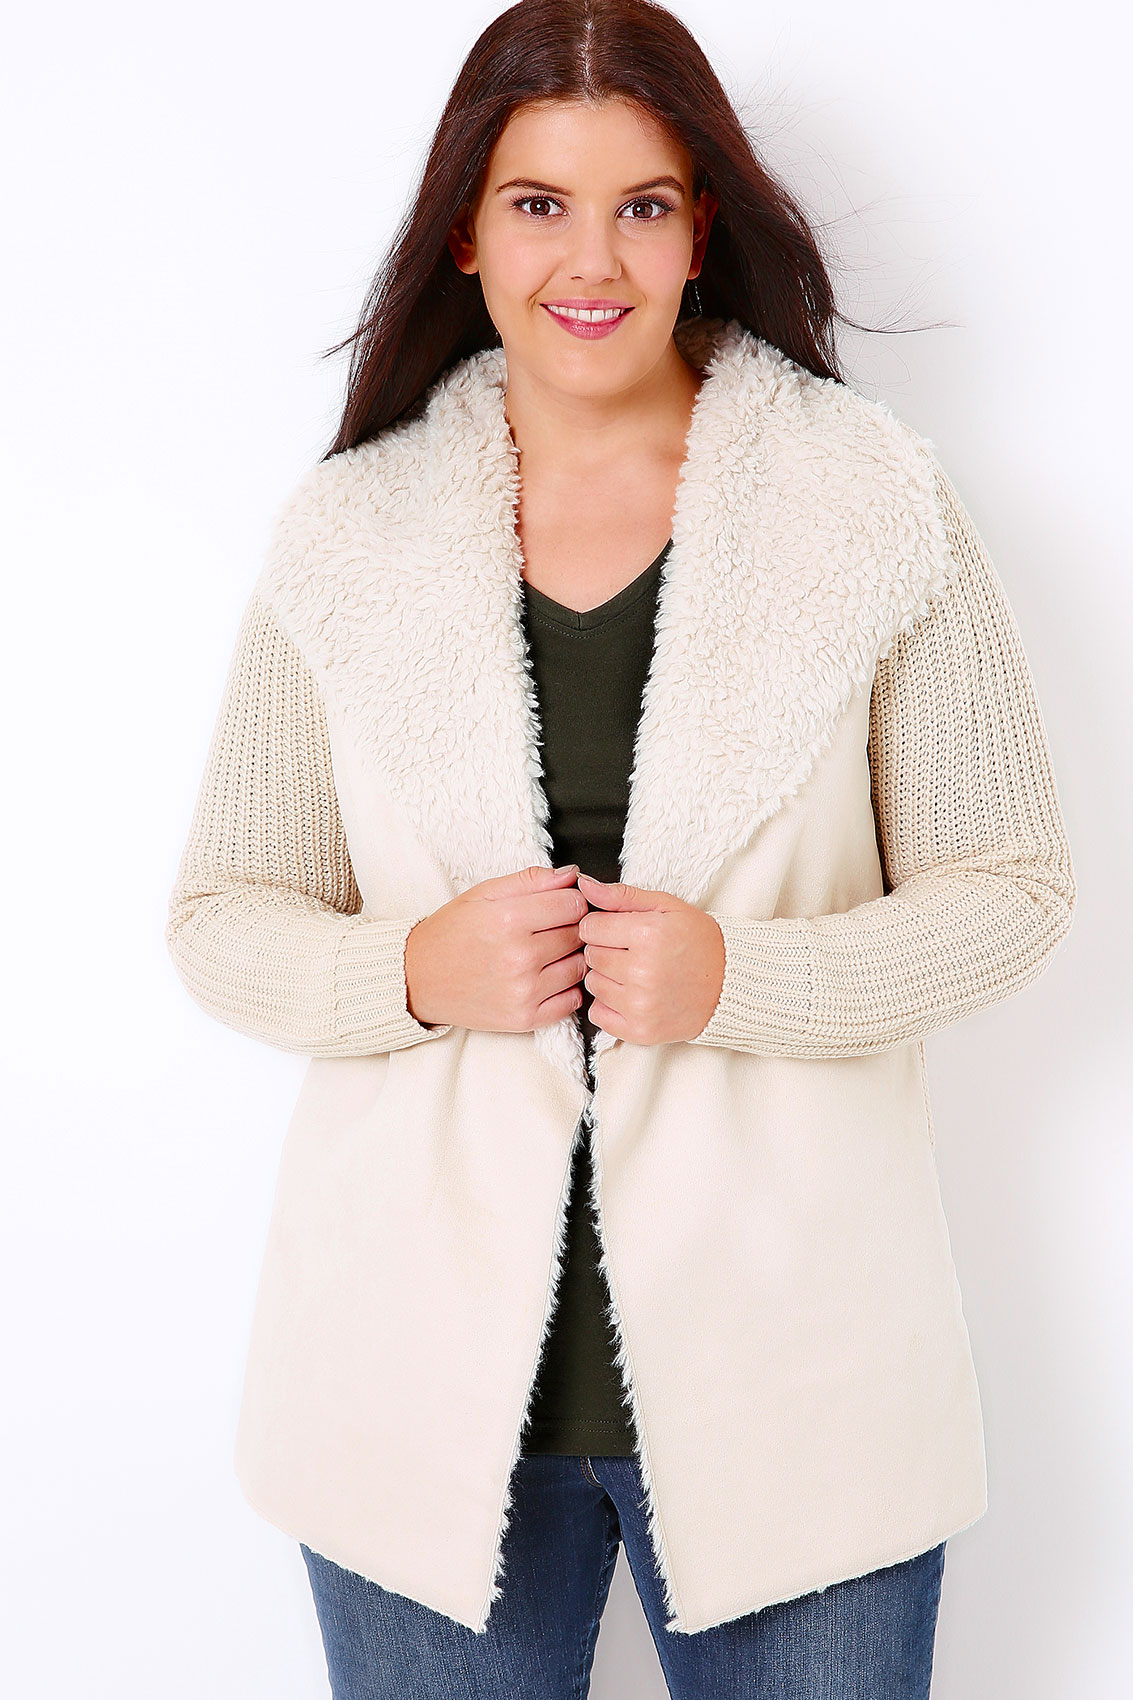 Cream Chunky Knit Cardigan With Shearling Collar Plus Size 16 to 32